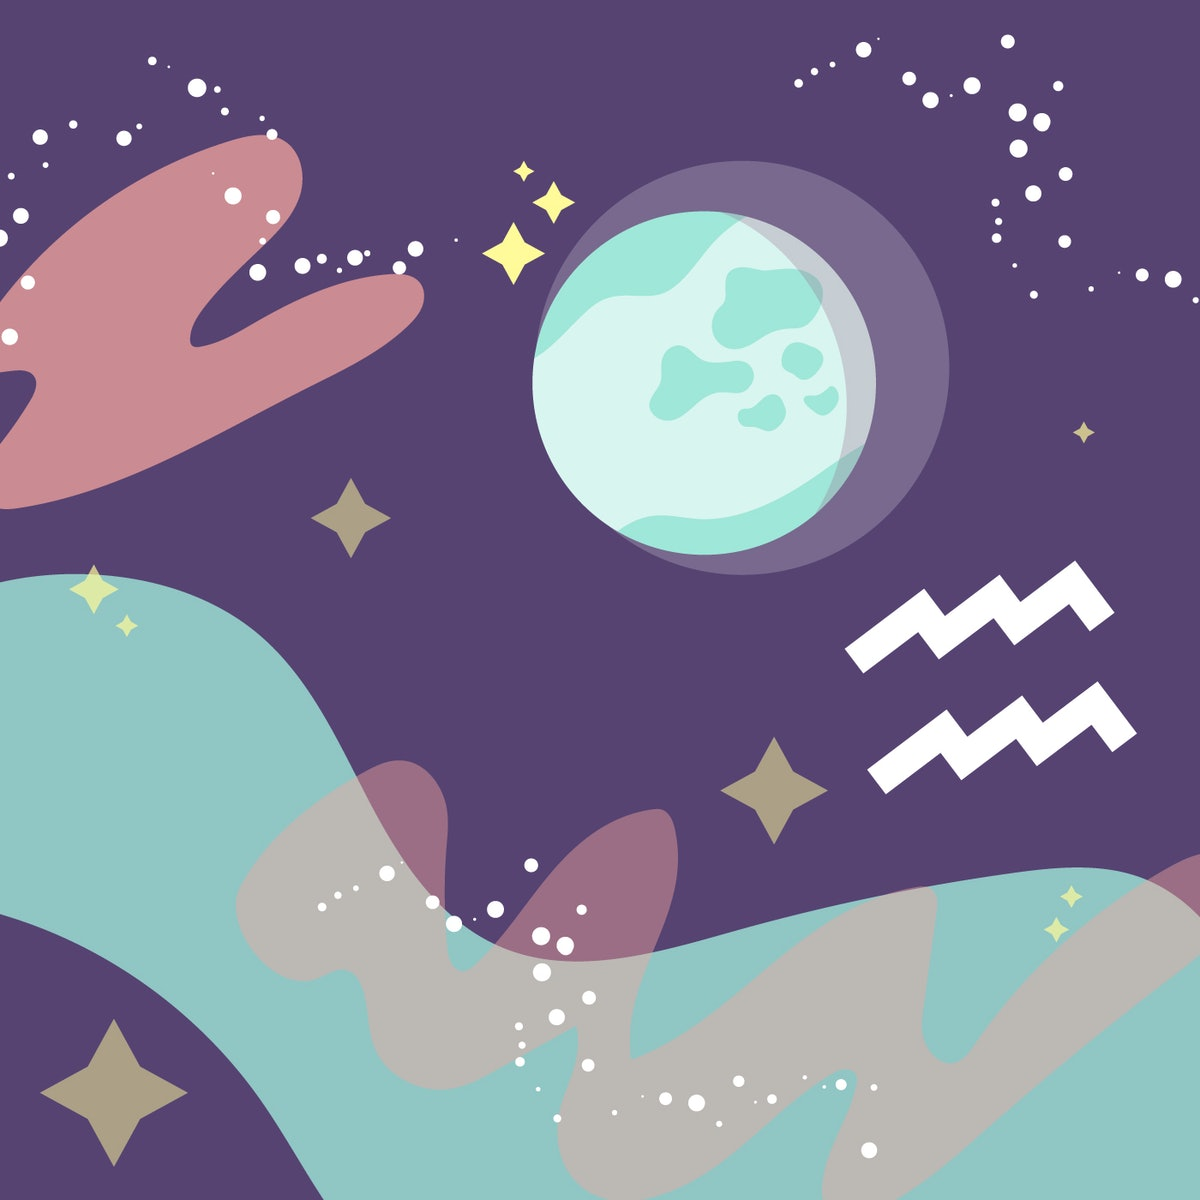 Your January 2019 Monthly Horoscope